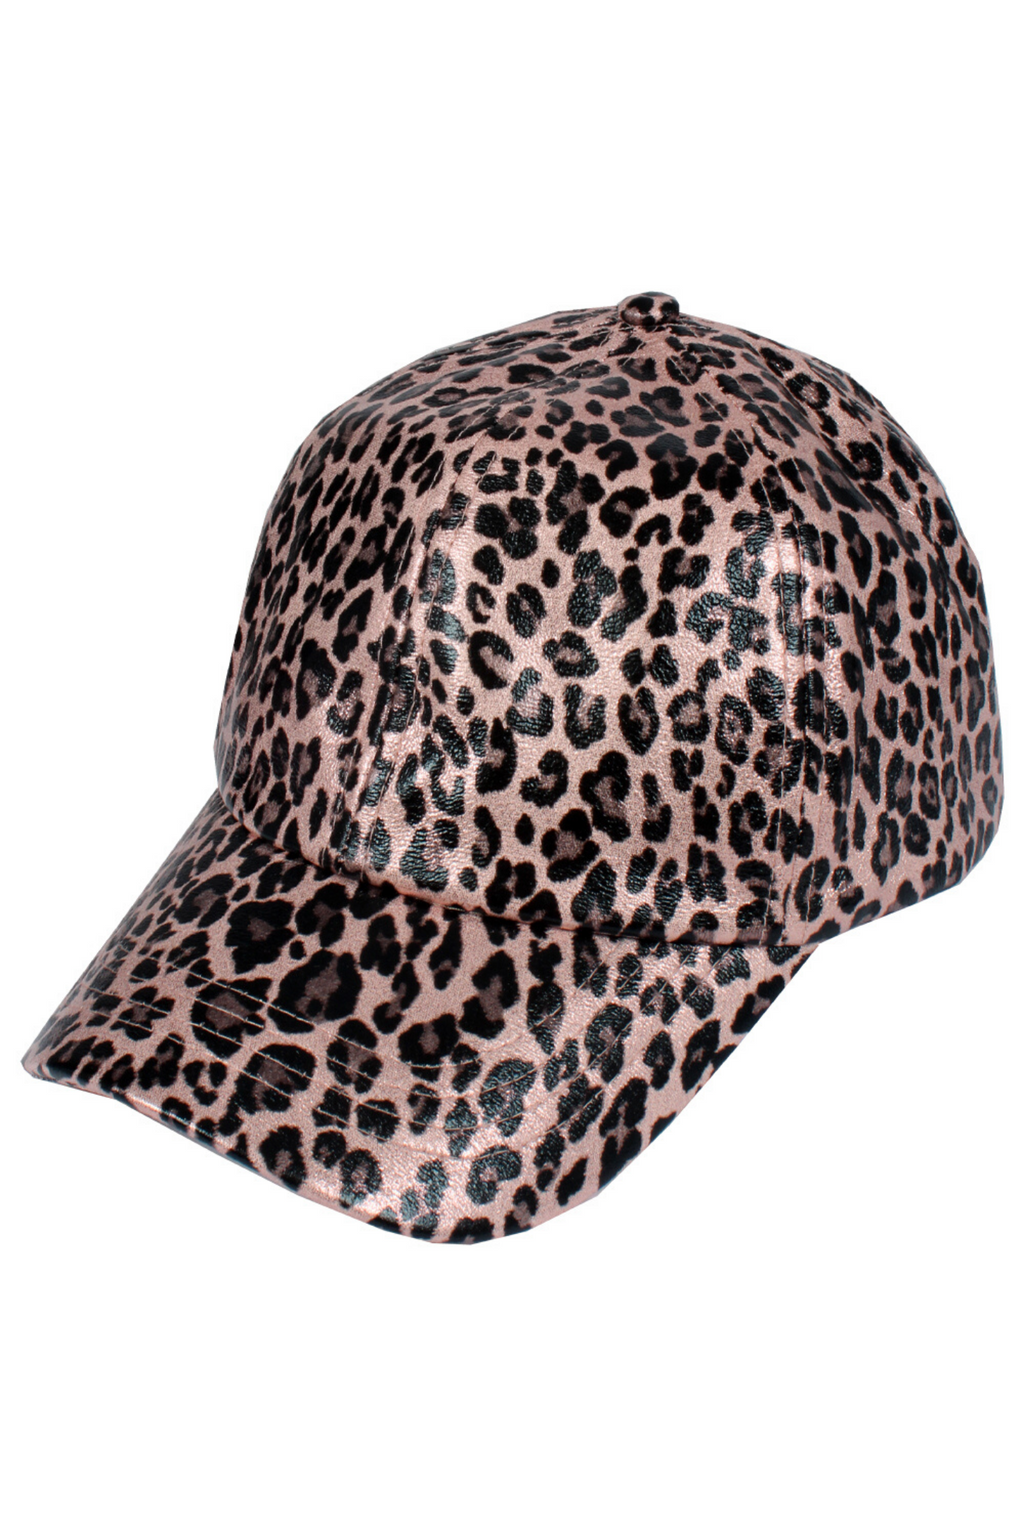 FWCAPT813 - Satin-Lined Pink Leopard Print Ponytail Cap - David and Young Fashion Accessories